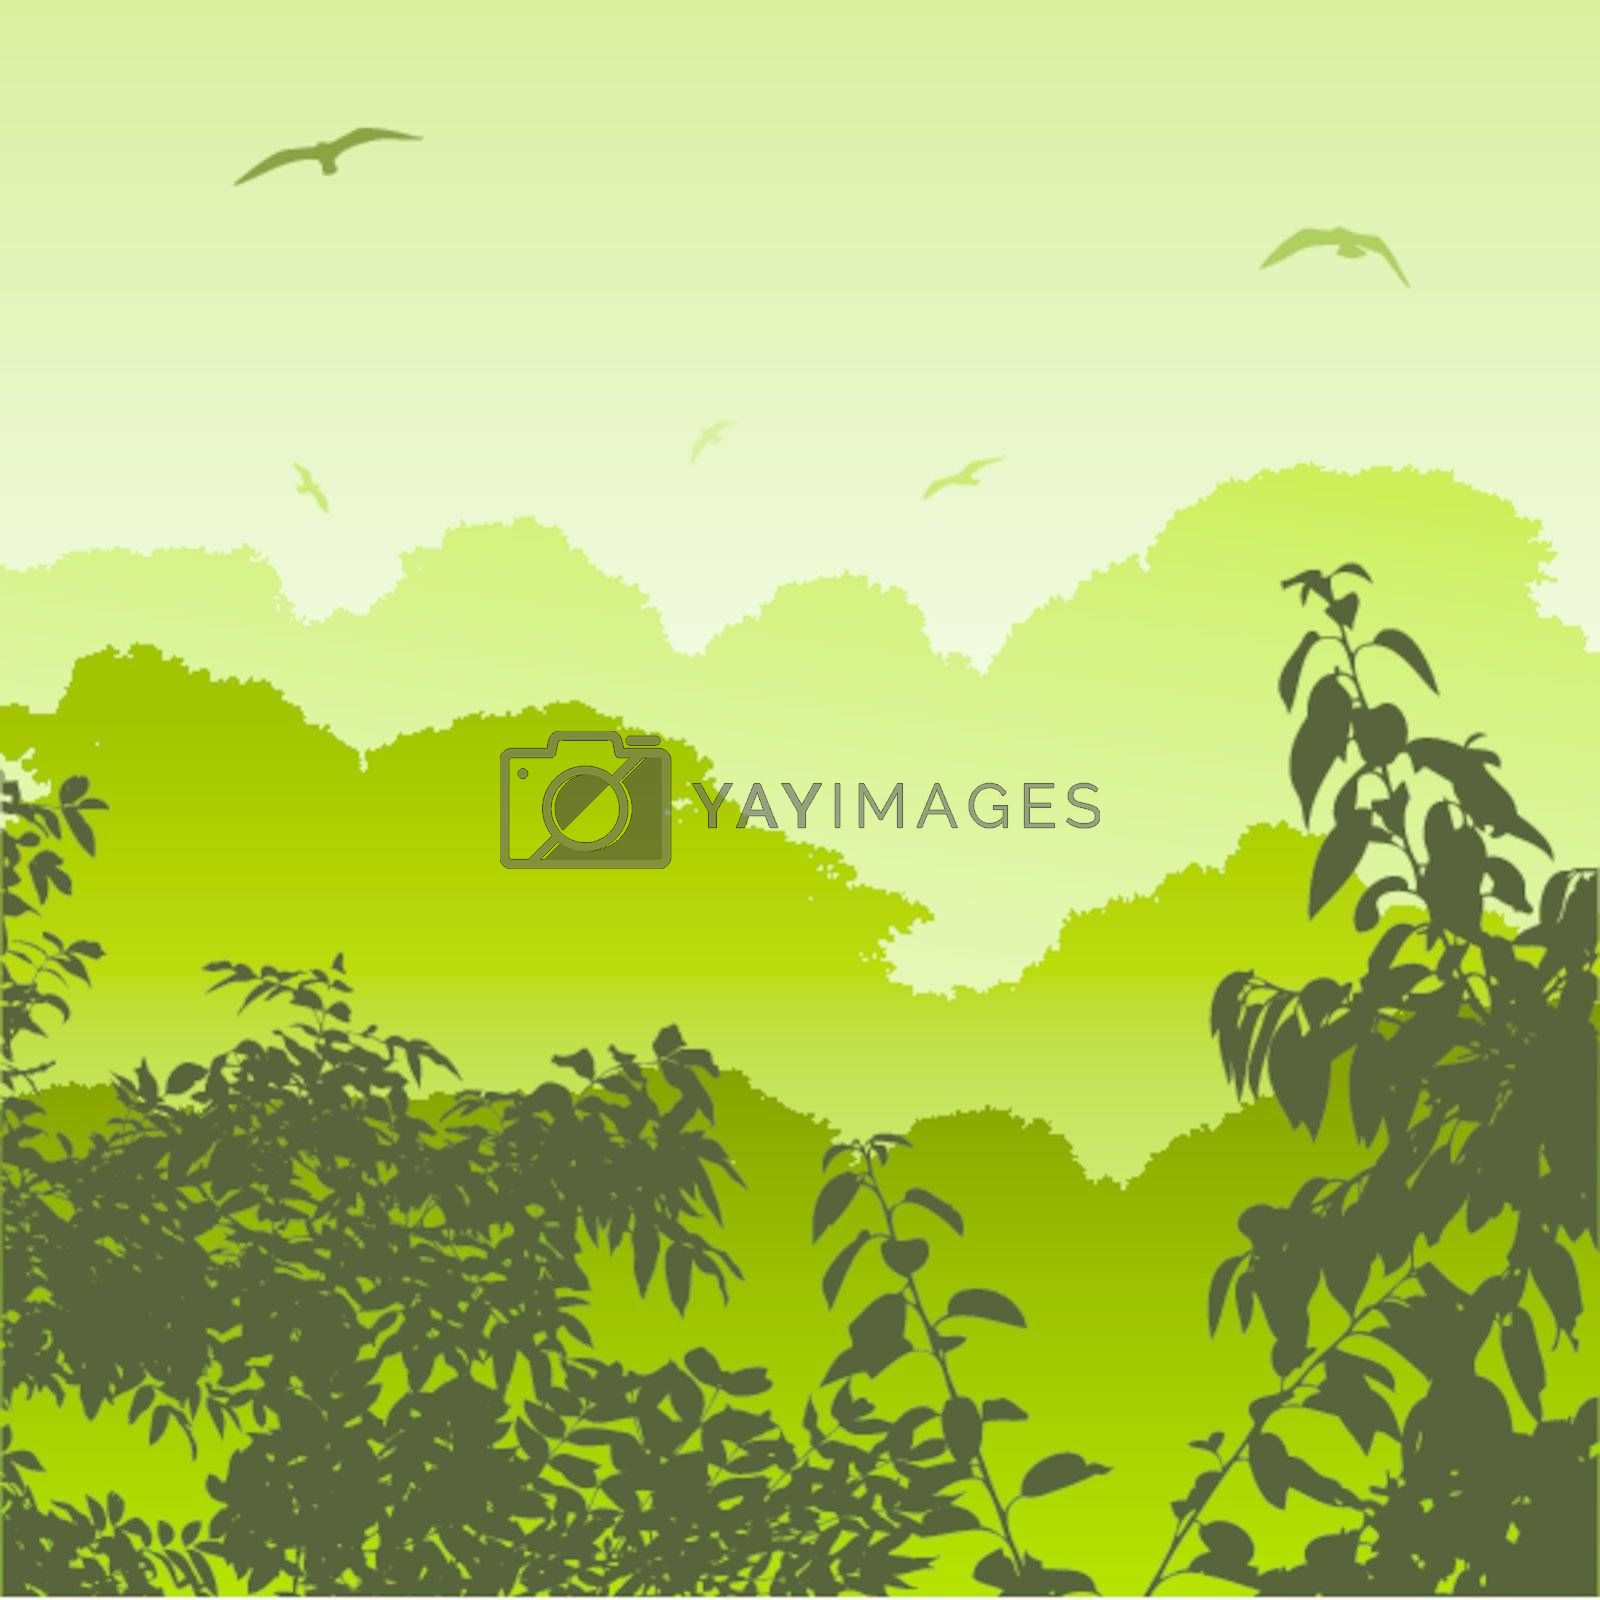 A Green Forest Landscape with Trees